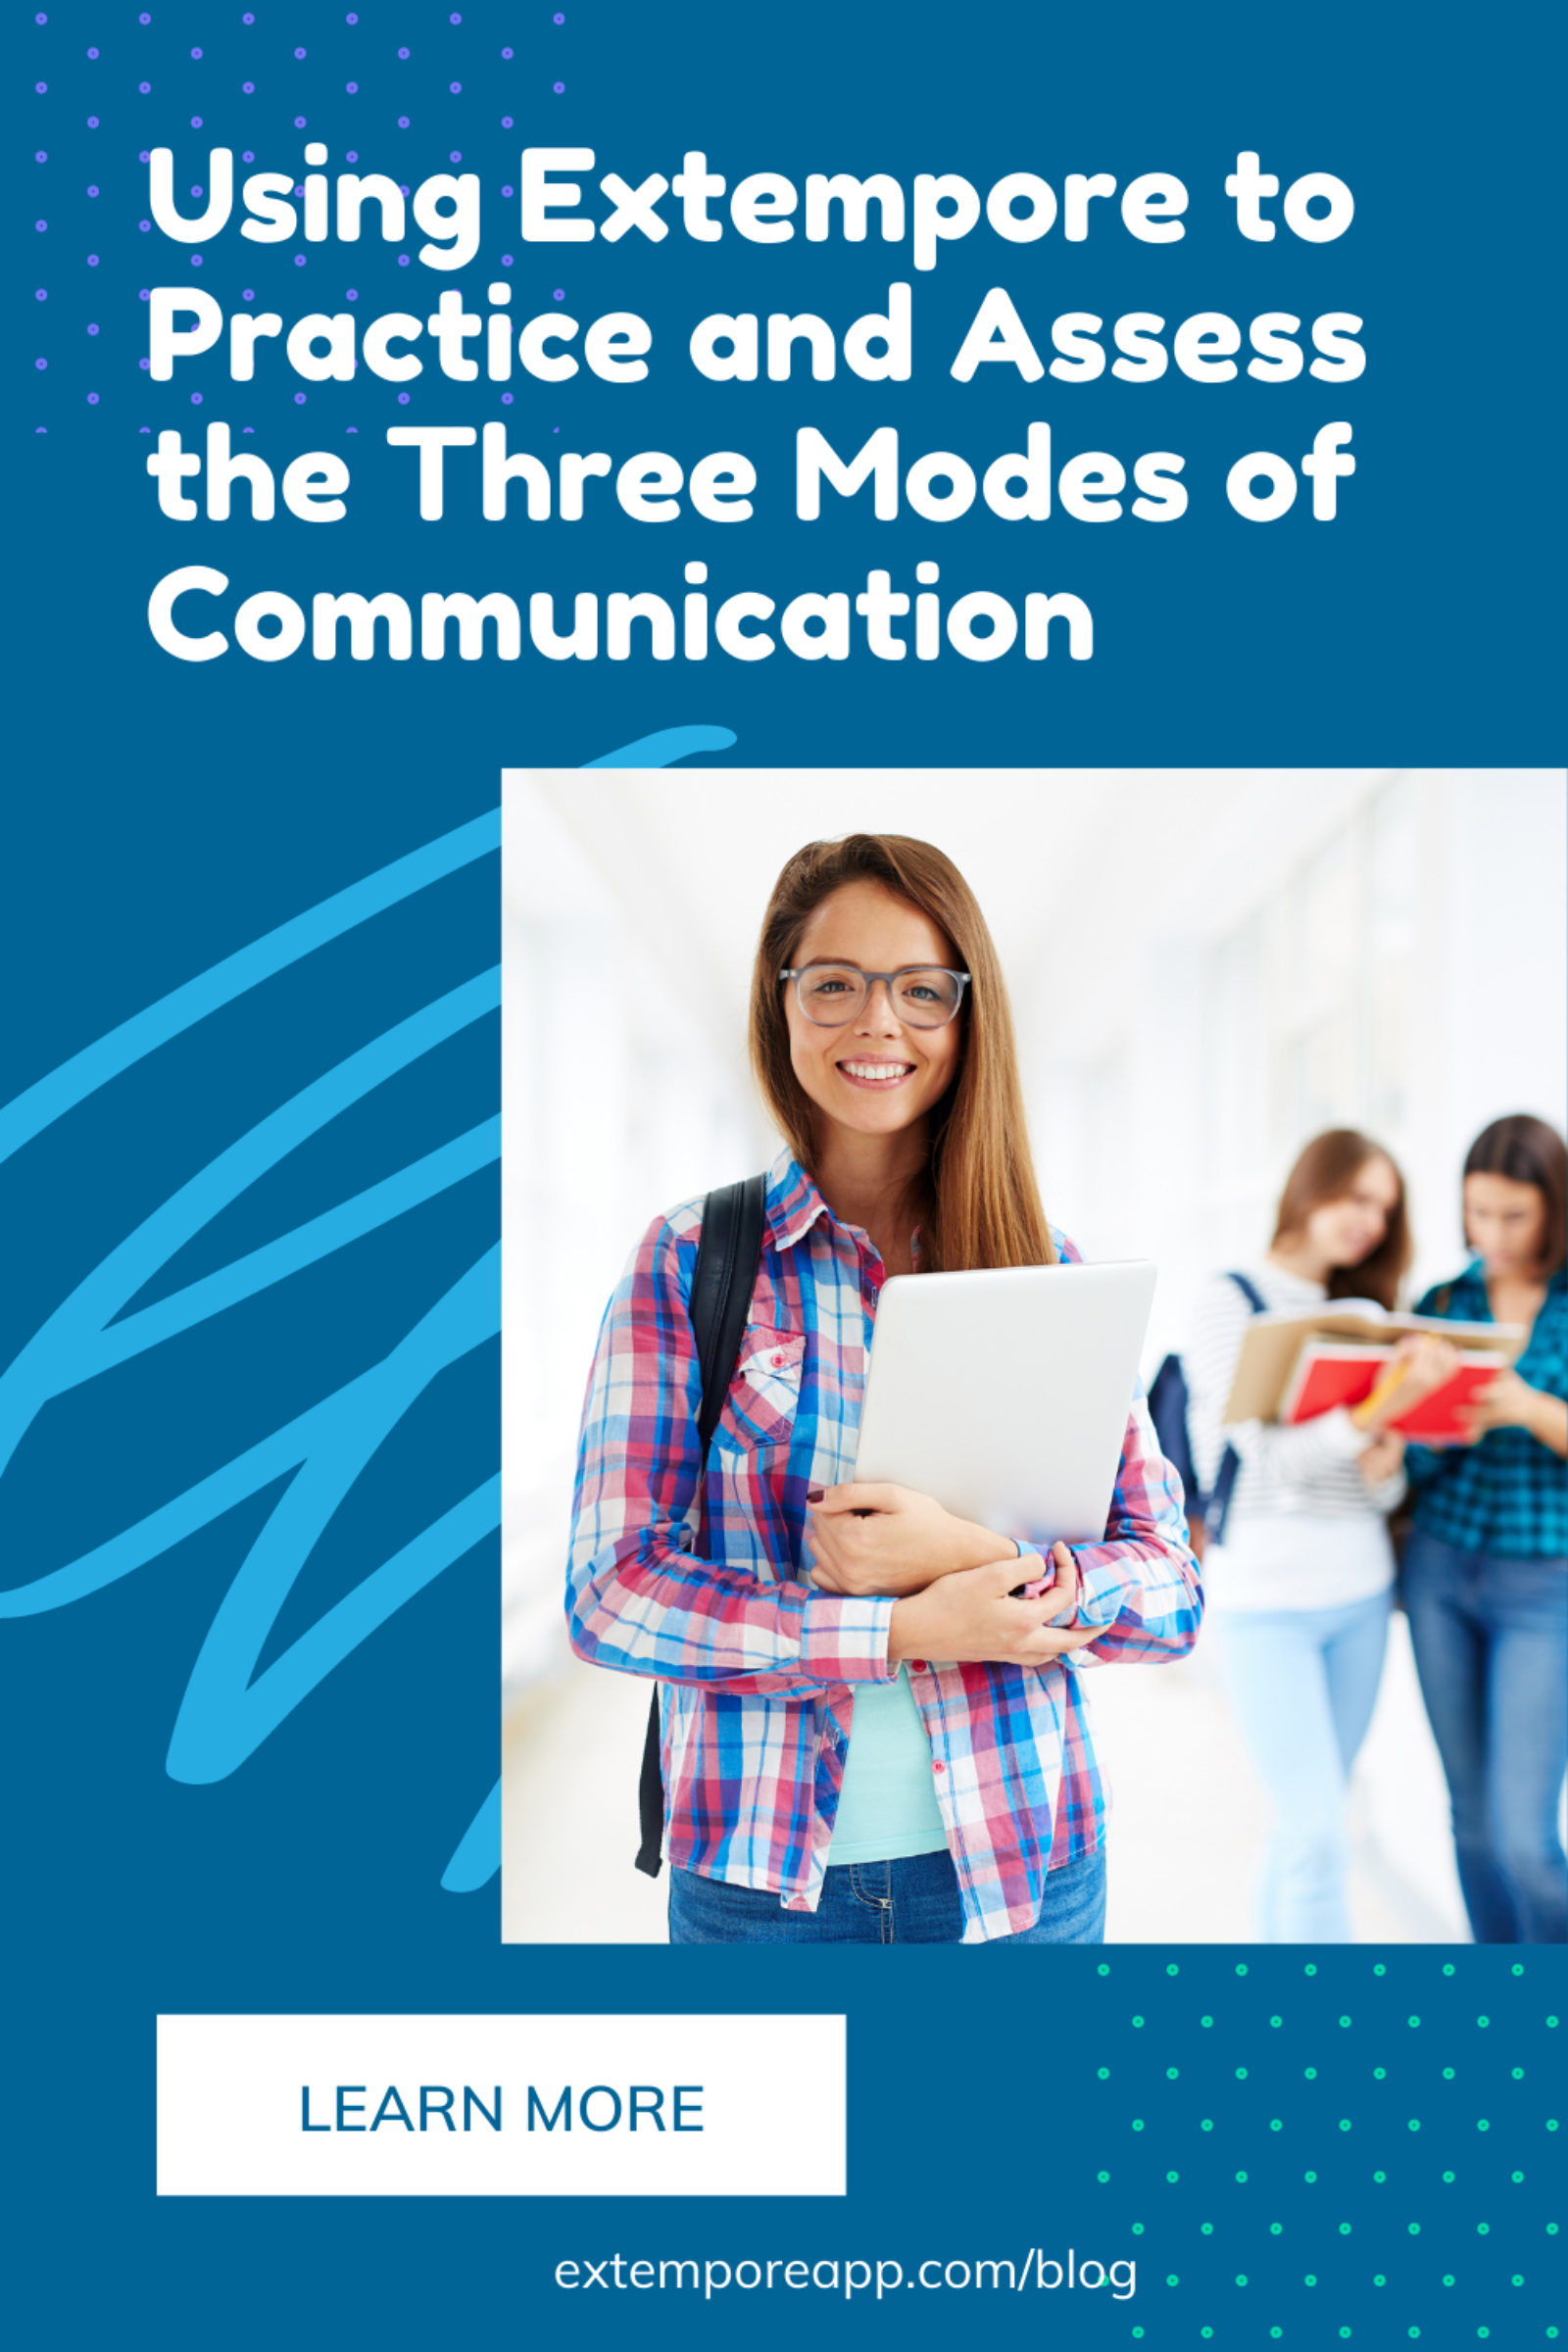 Using Extempore to Practice and Assess the Three Modes of Communicaton